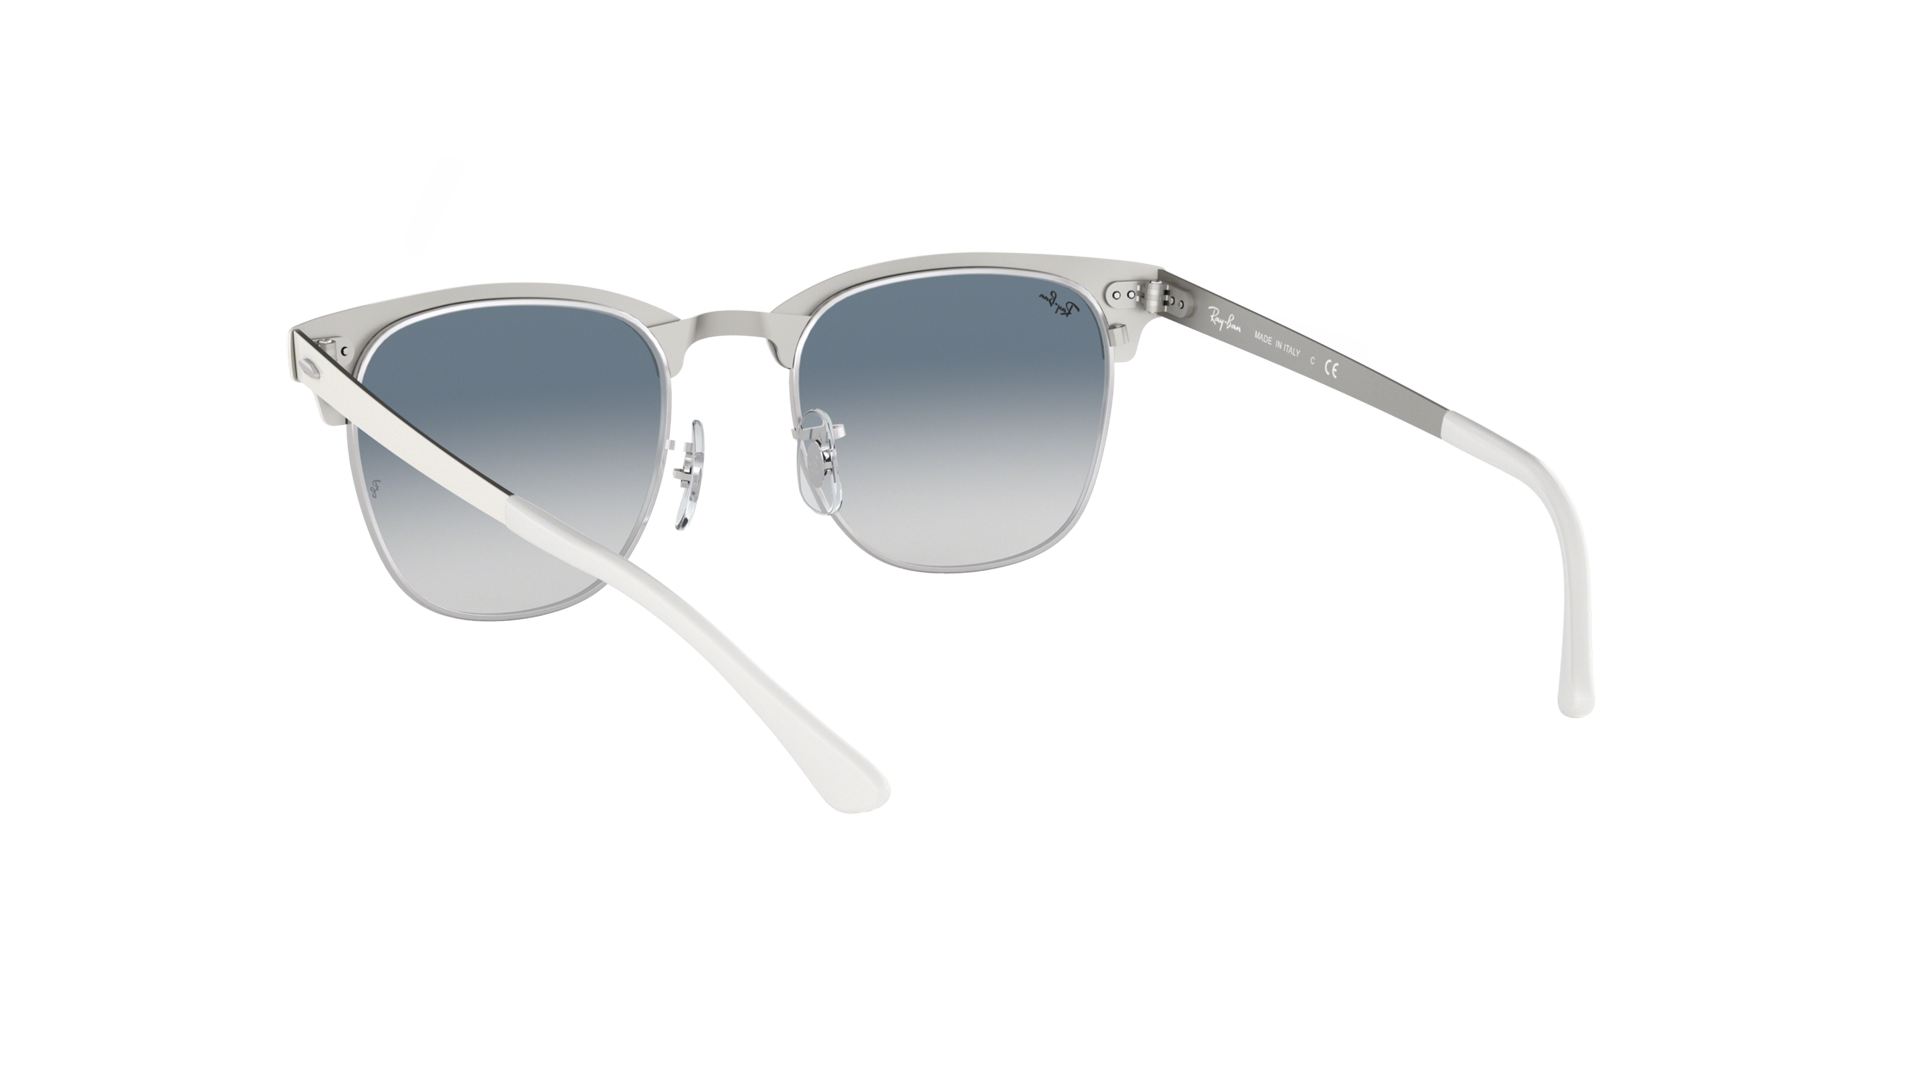 f28ef370f11 Sunglasses Ray-Ban Clubmaster Metal White RB3716 9088 3F 51-21 Medium  Gradient